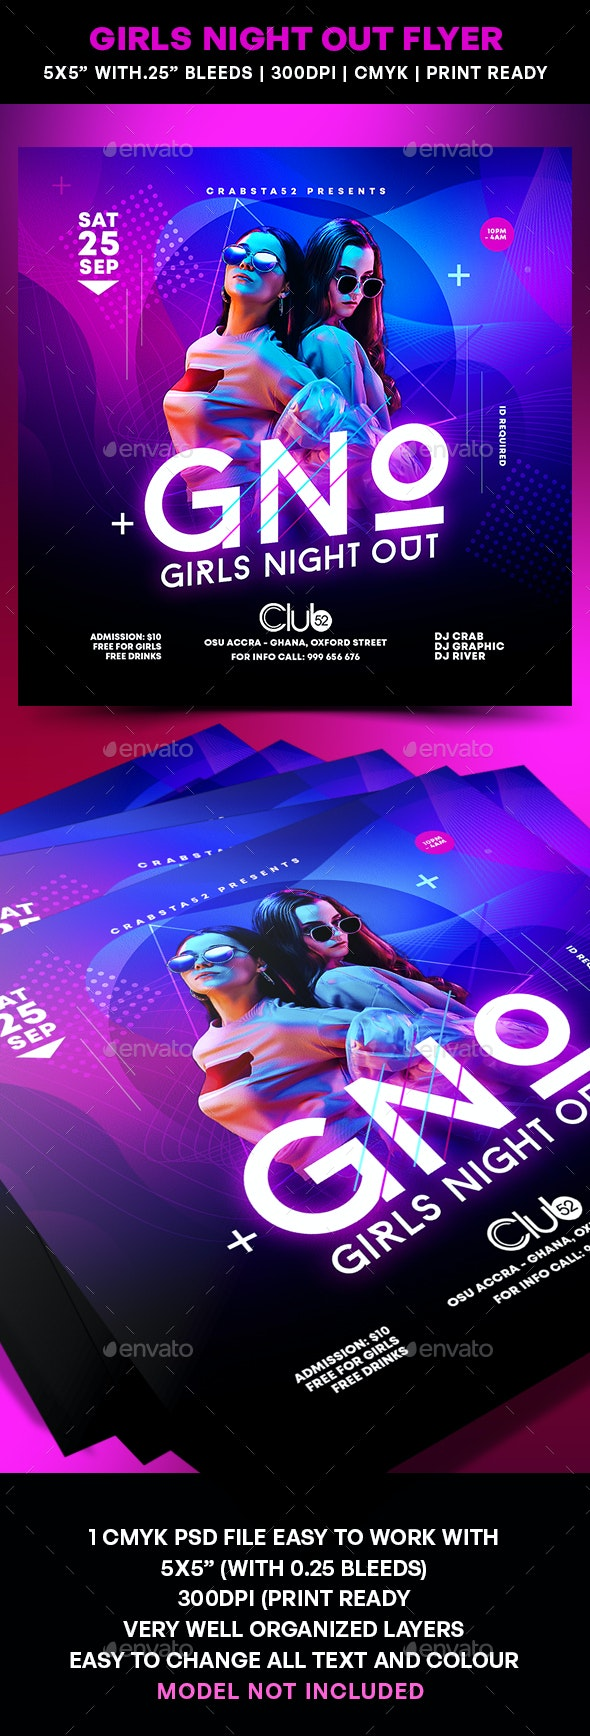 Girls Night Out Flyer - Flyers Print Templates